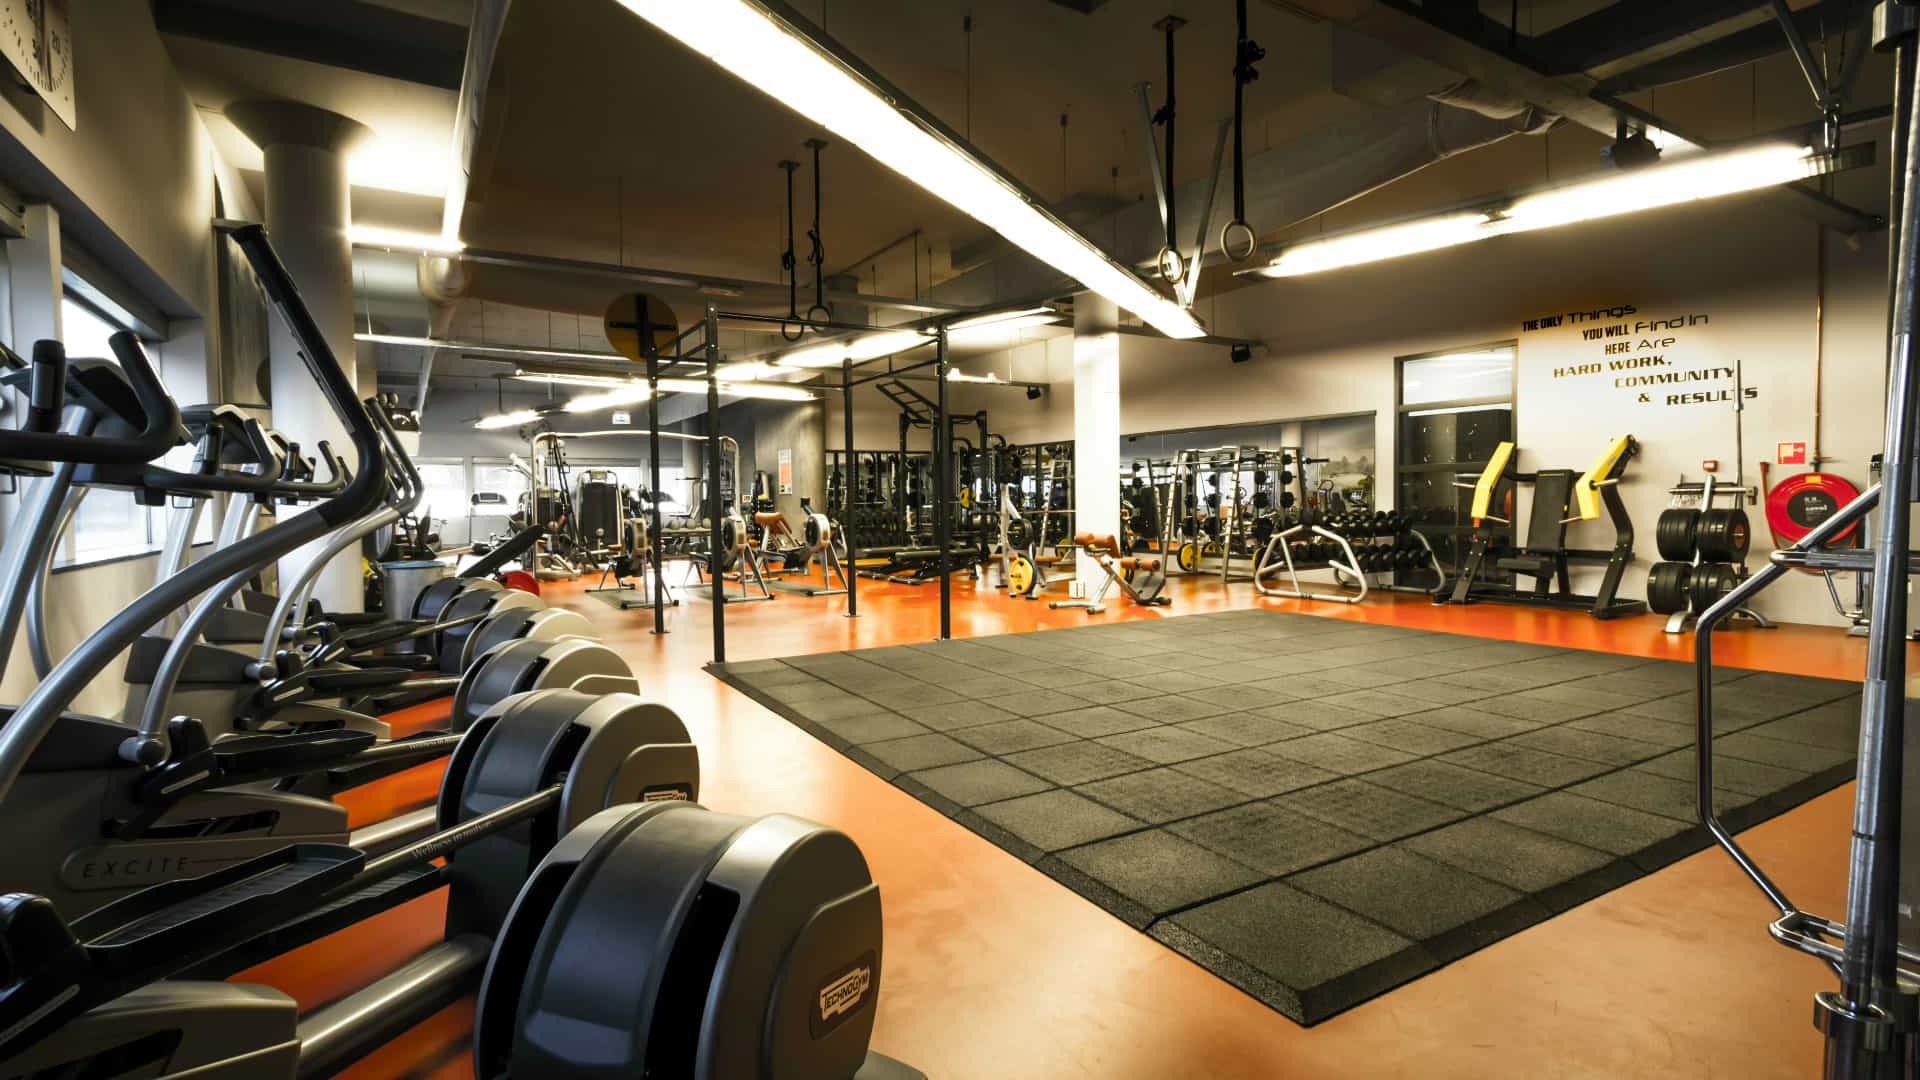 Gym Management Software Helped Sportclub Exercise Increase Retention and Revenue